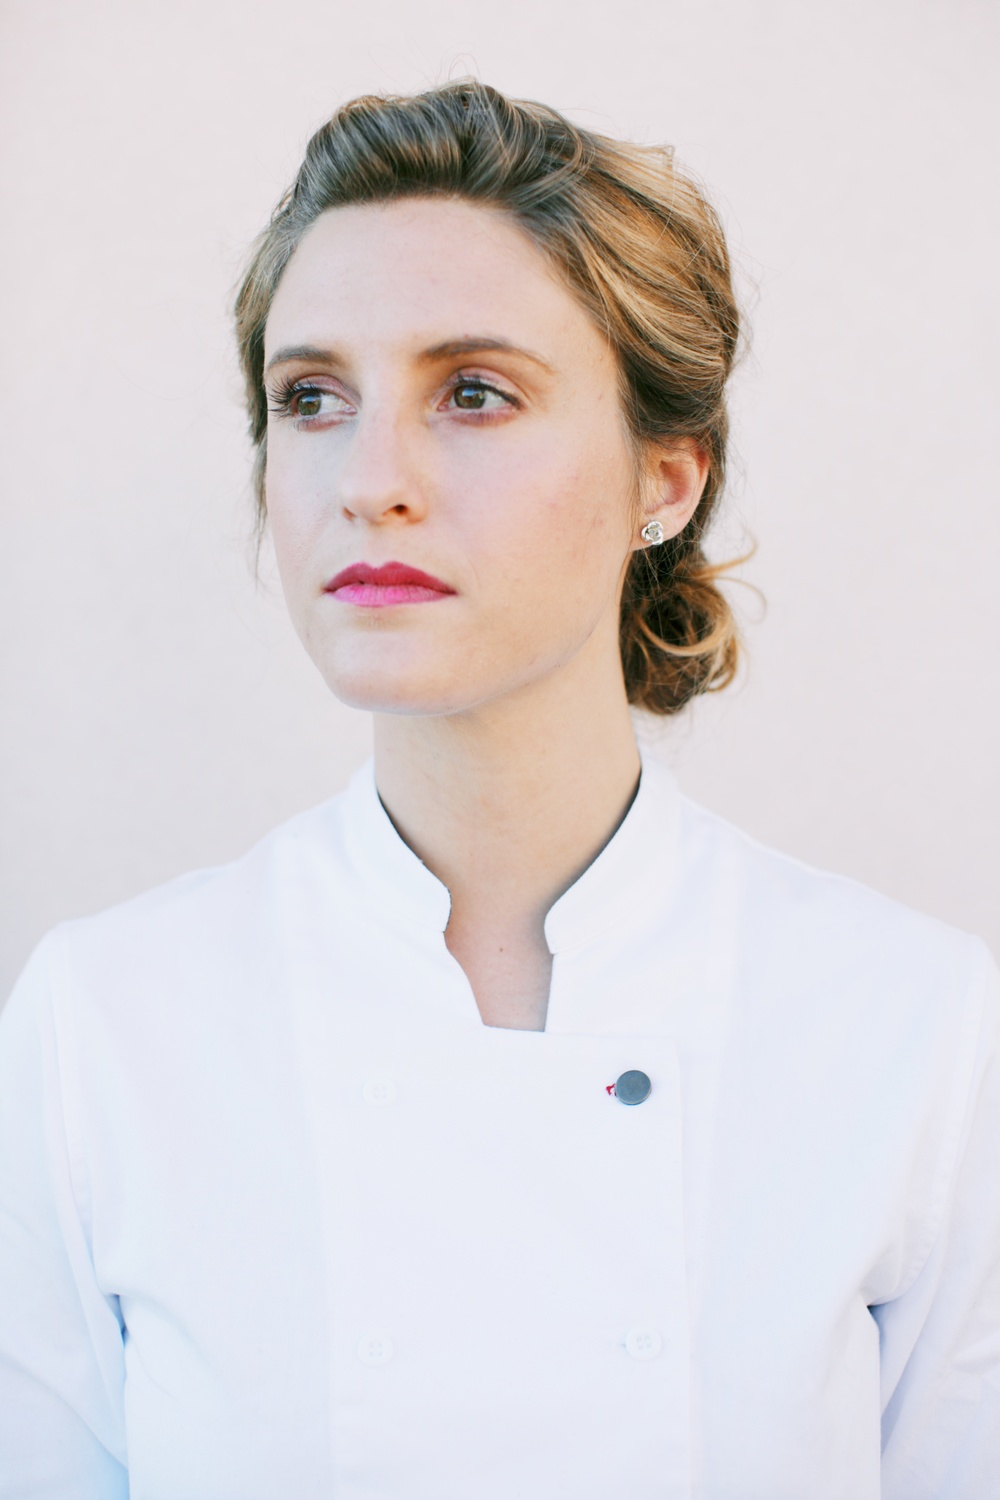 Women in Food: 10 Questions With Chef Ryan Ross